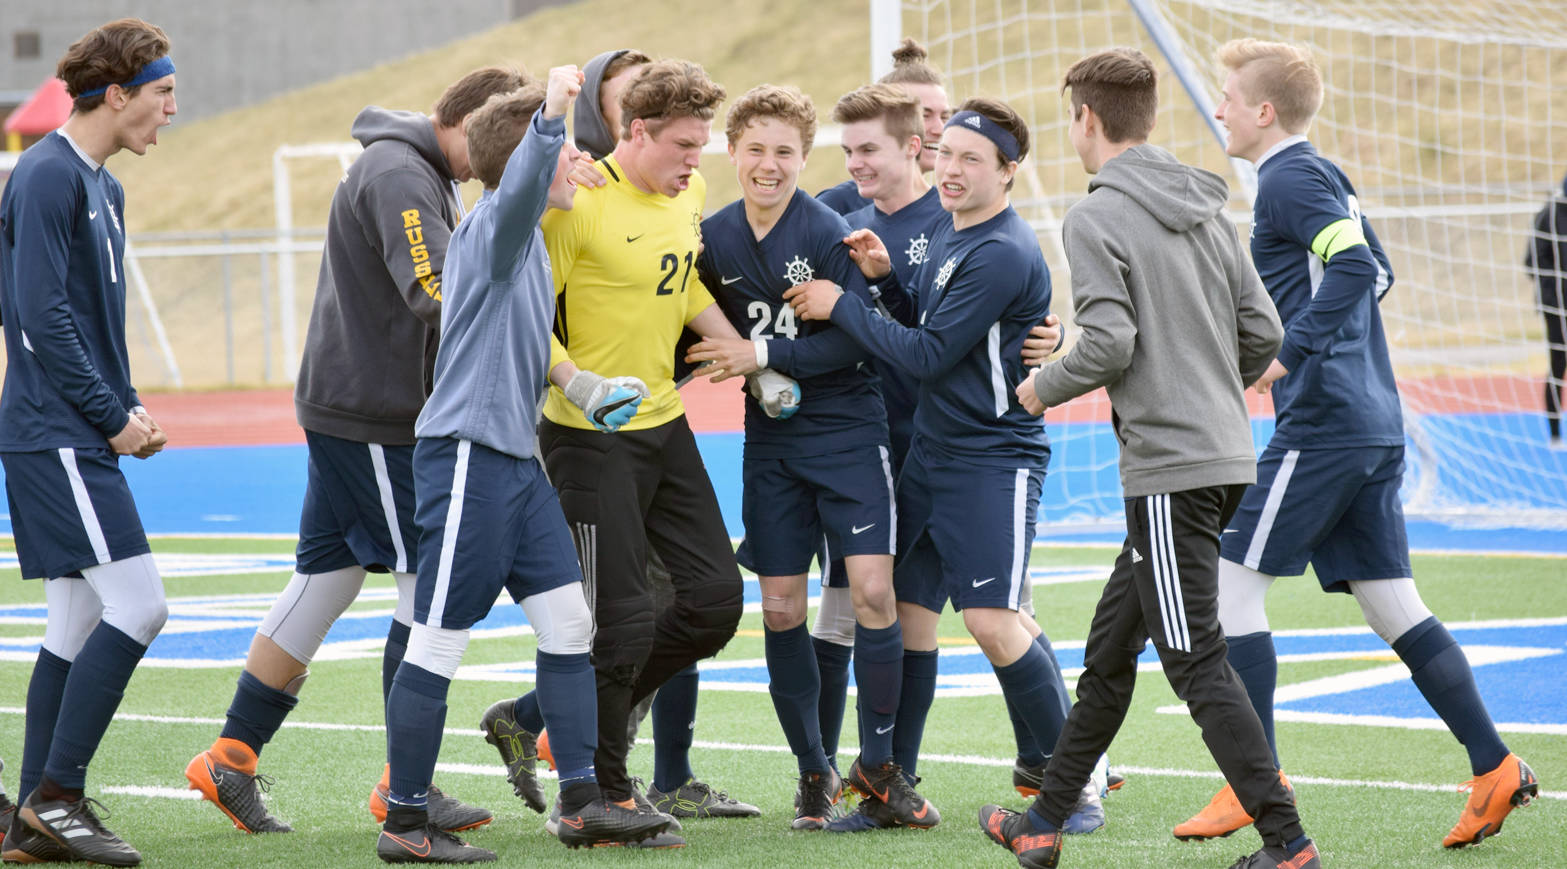 Photo by Jeff Helminiak/Peninsula Clarion Homer goalie Tucker Weston (in yellow) celebrates with teammates after defeating Soldotna in the Peninsula Conference semifinals Friday, May 18 at Soldotna High School.